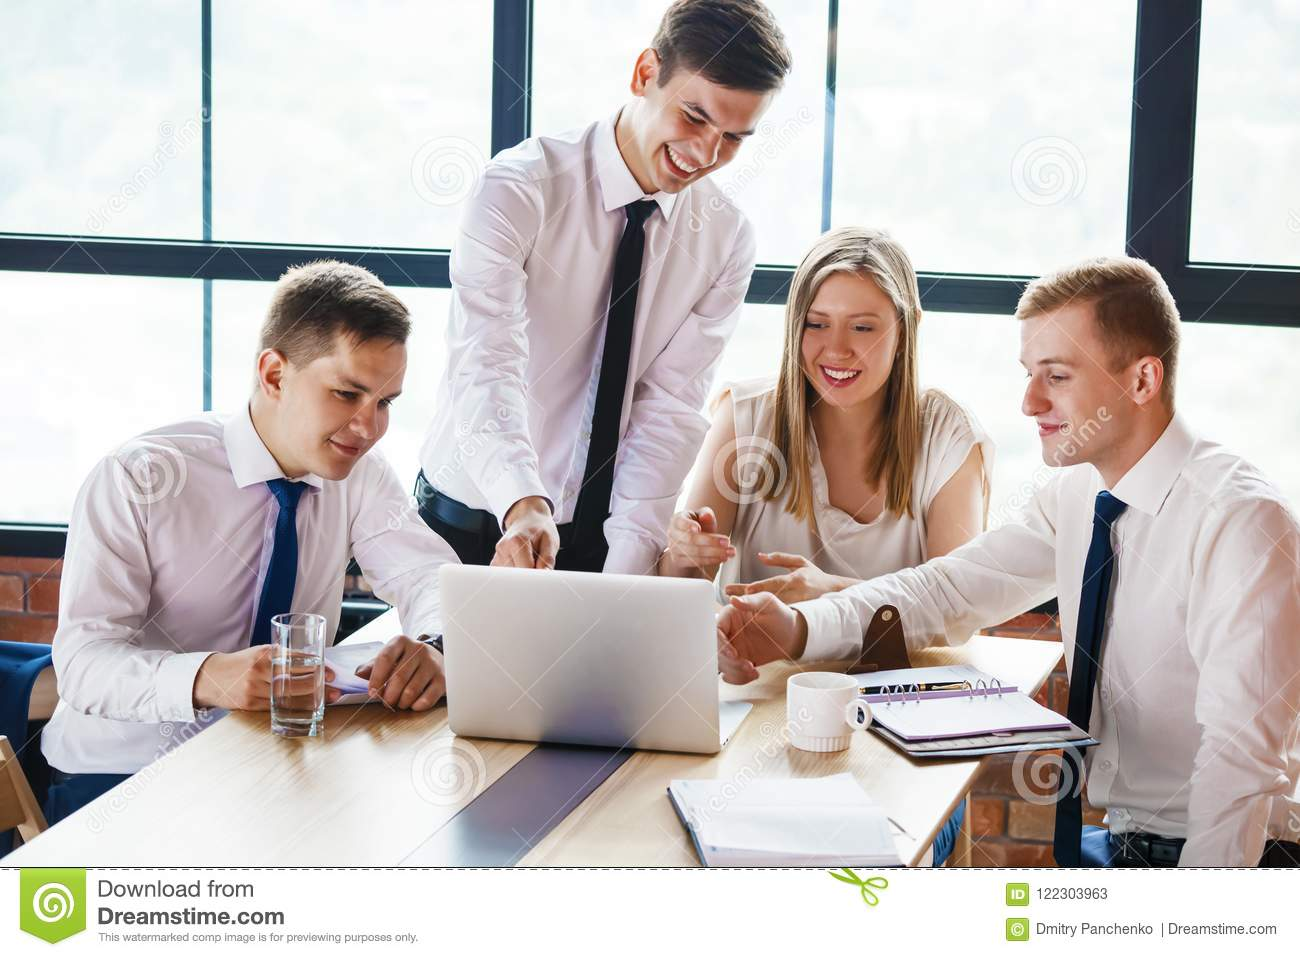 Group Of Young Business People Working In Office. Stock Image - Image of  office, laptop: 122303963